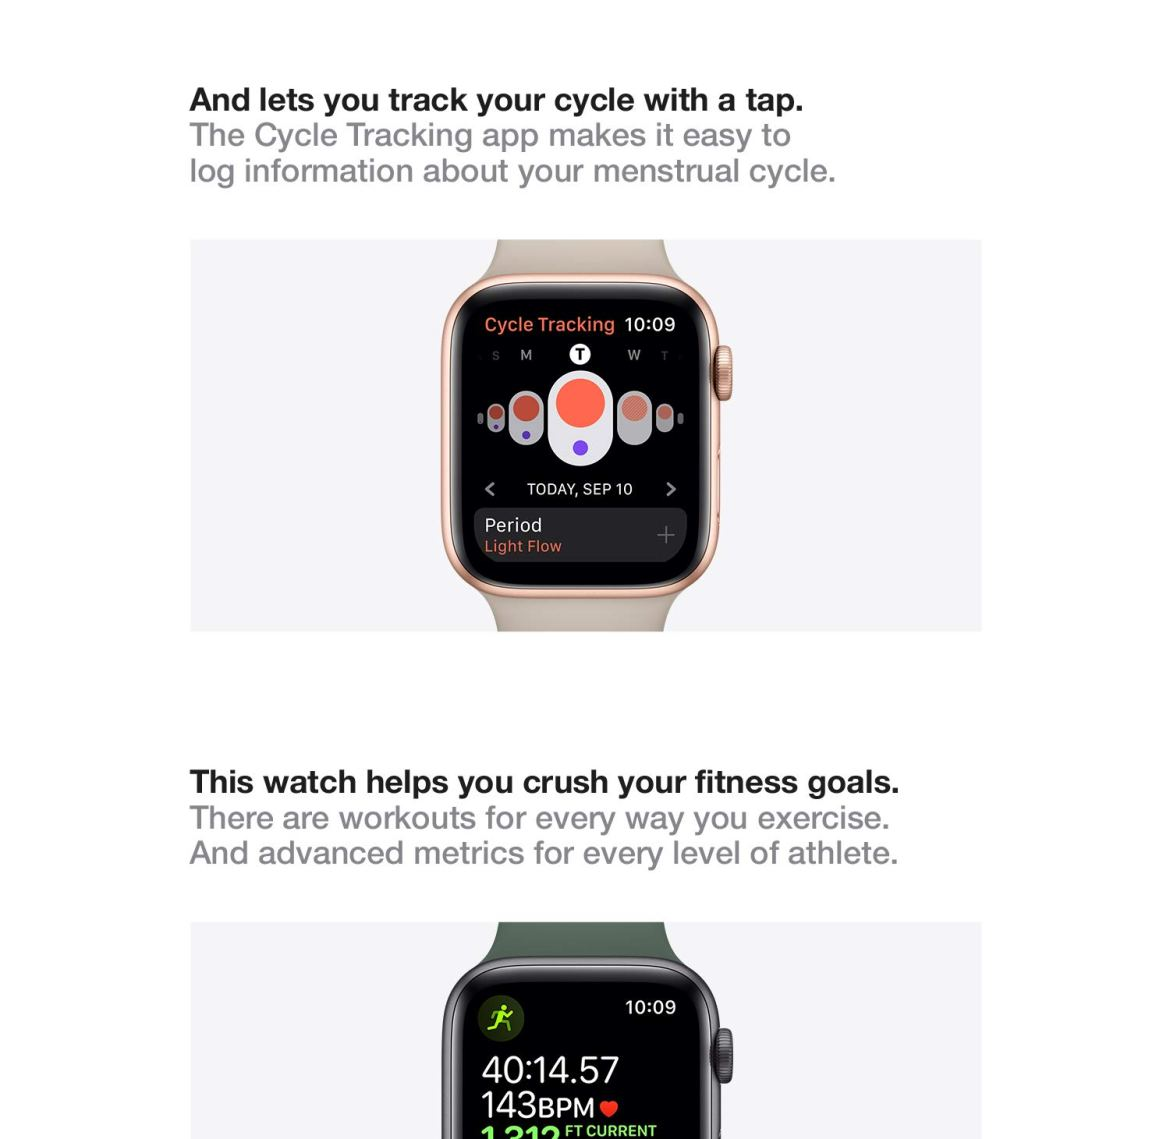 And lets you track your cycle with a tap. The Cycle Tracking app makes it easy to log information about your menstrual cycle. This watch helps you crush your fitness goals. There are workouts for every way you exercise. And advanced metrics for every level of athlete.